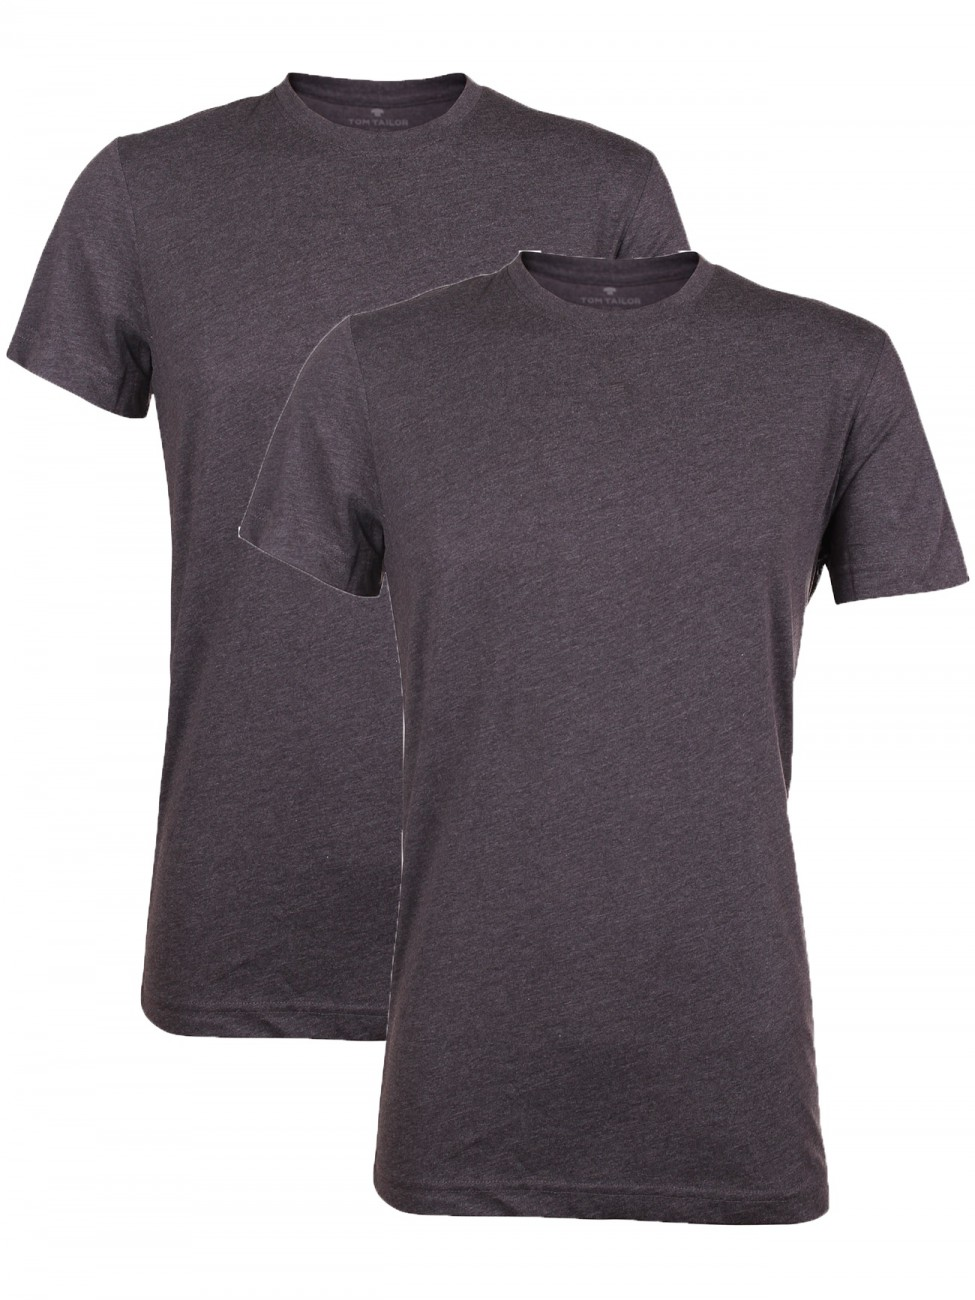 Tom Tailor Herren Crew- Neck T-Shirt - 2er Pack